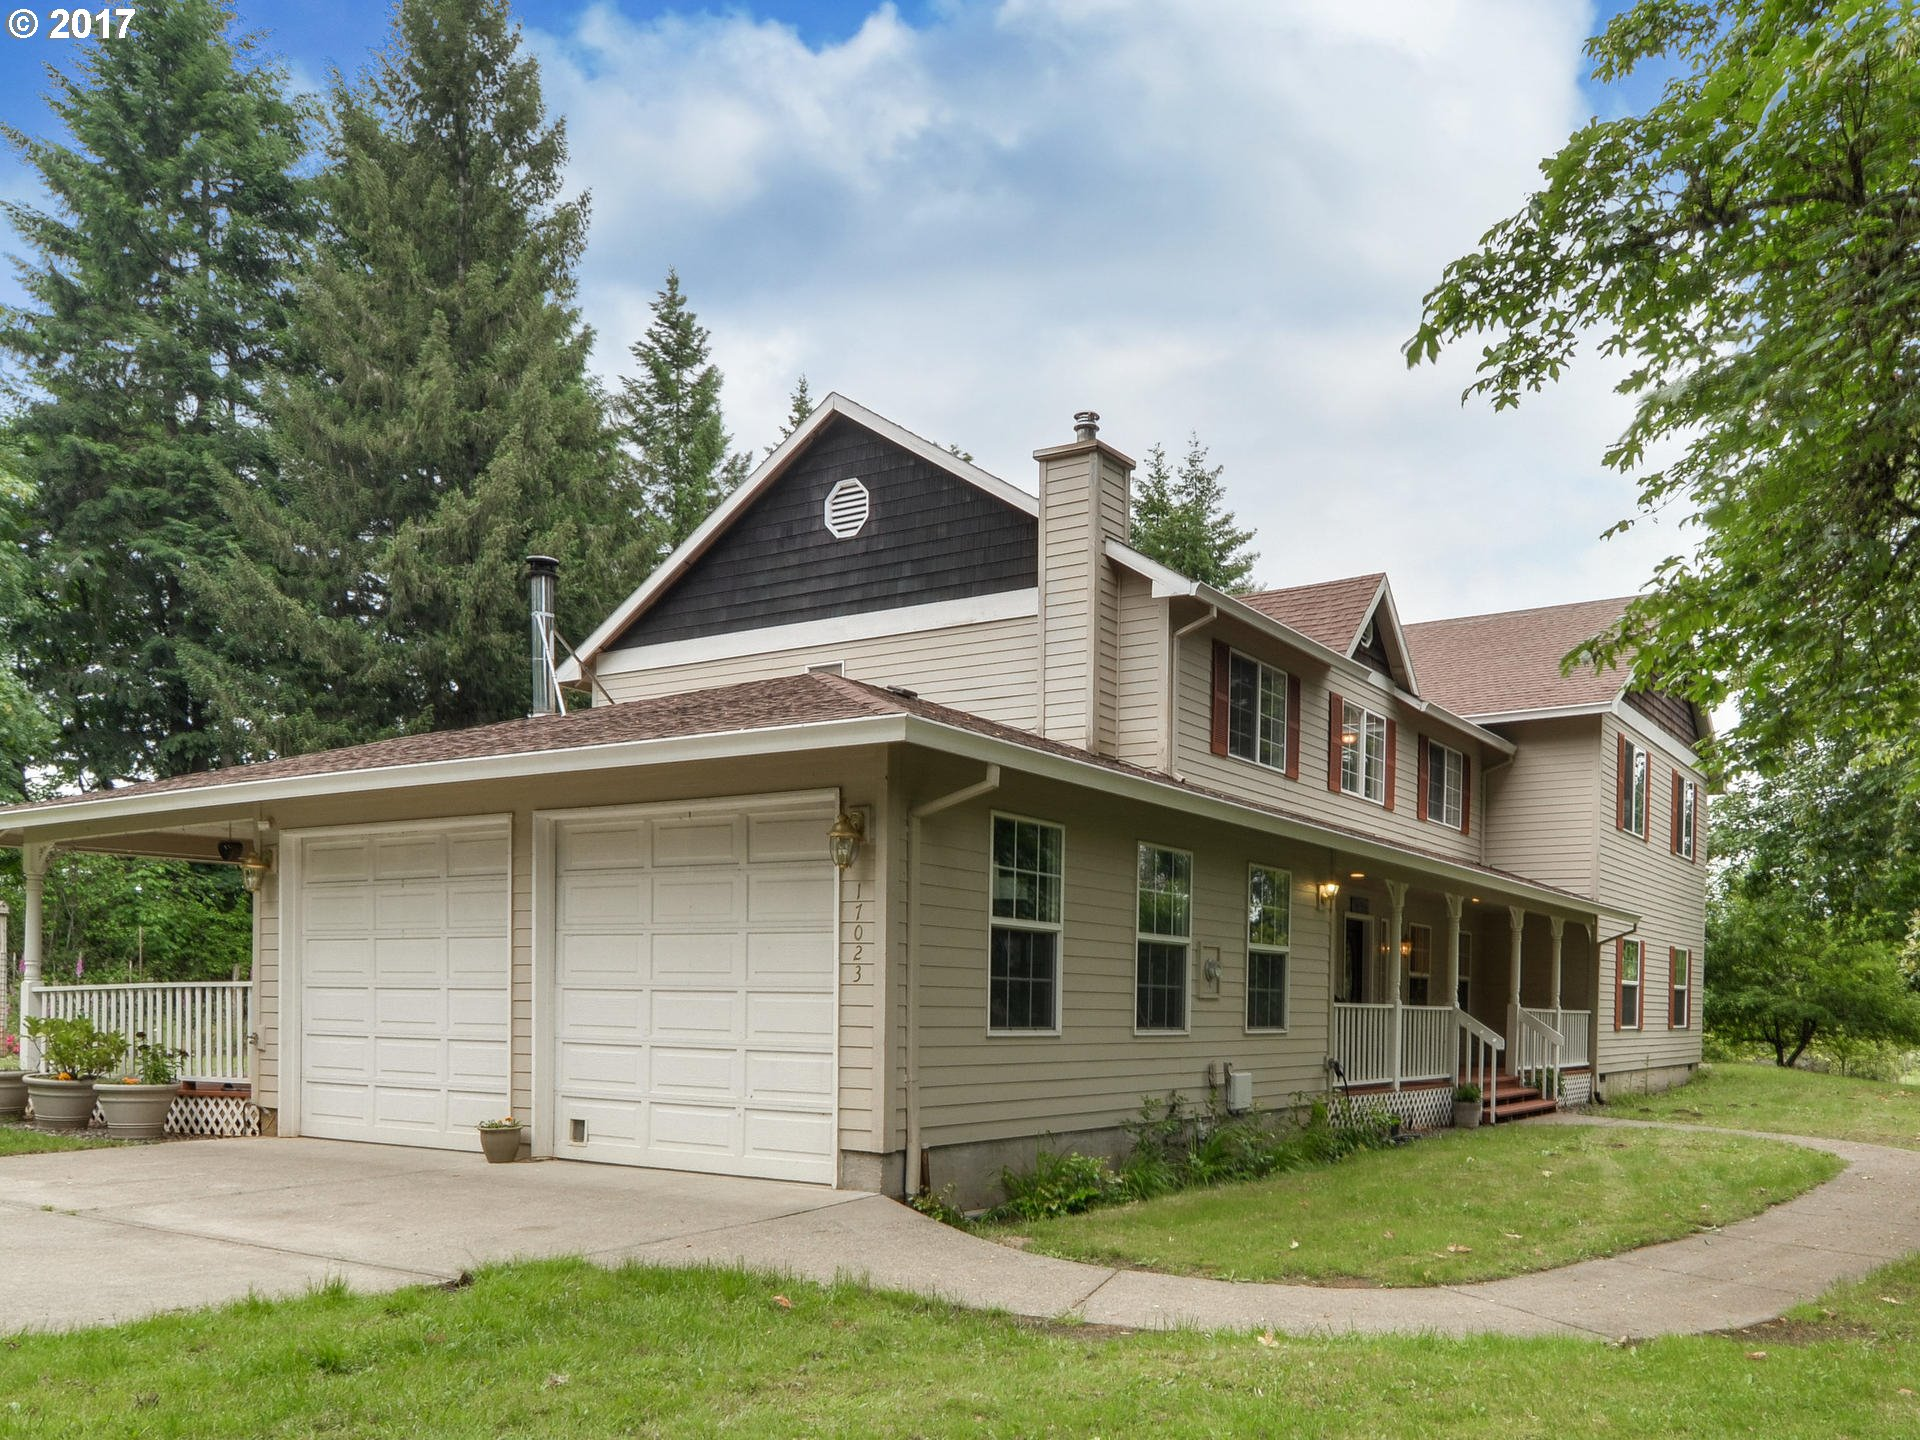 17023 S WINTER VIEW LN, Oregon City, OR 97045